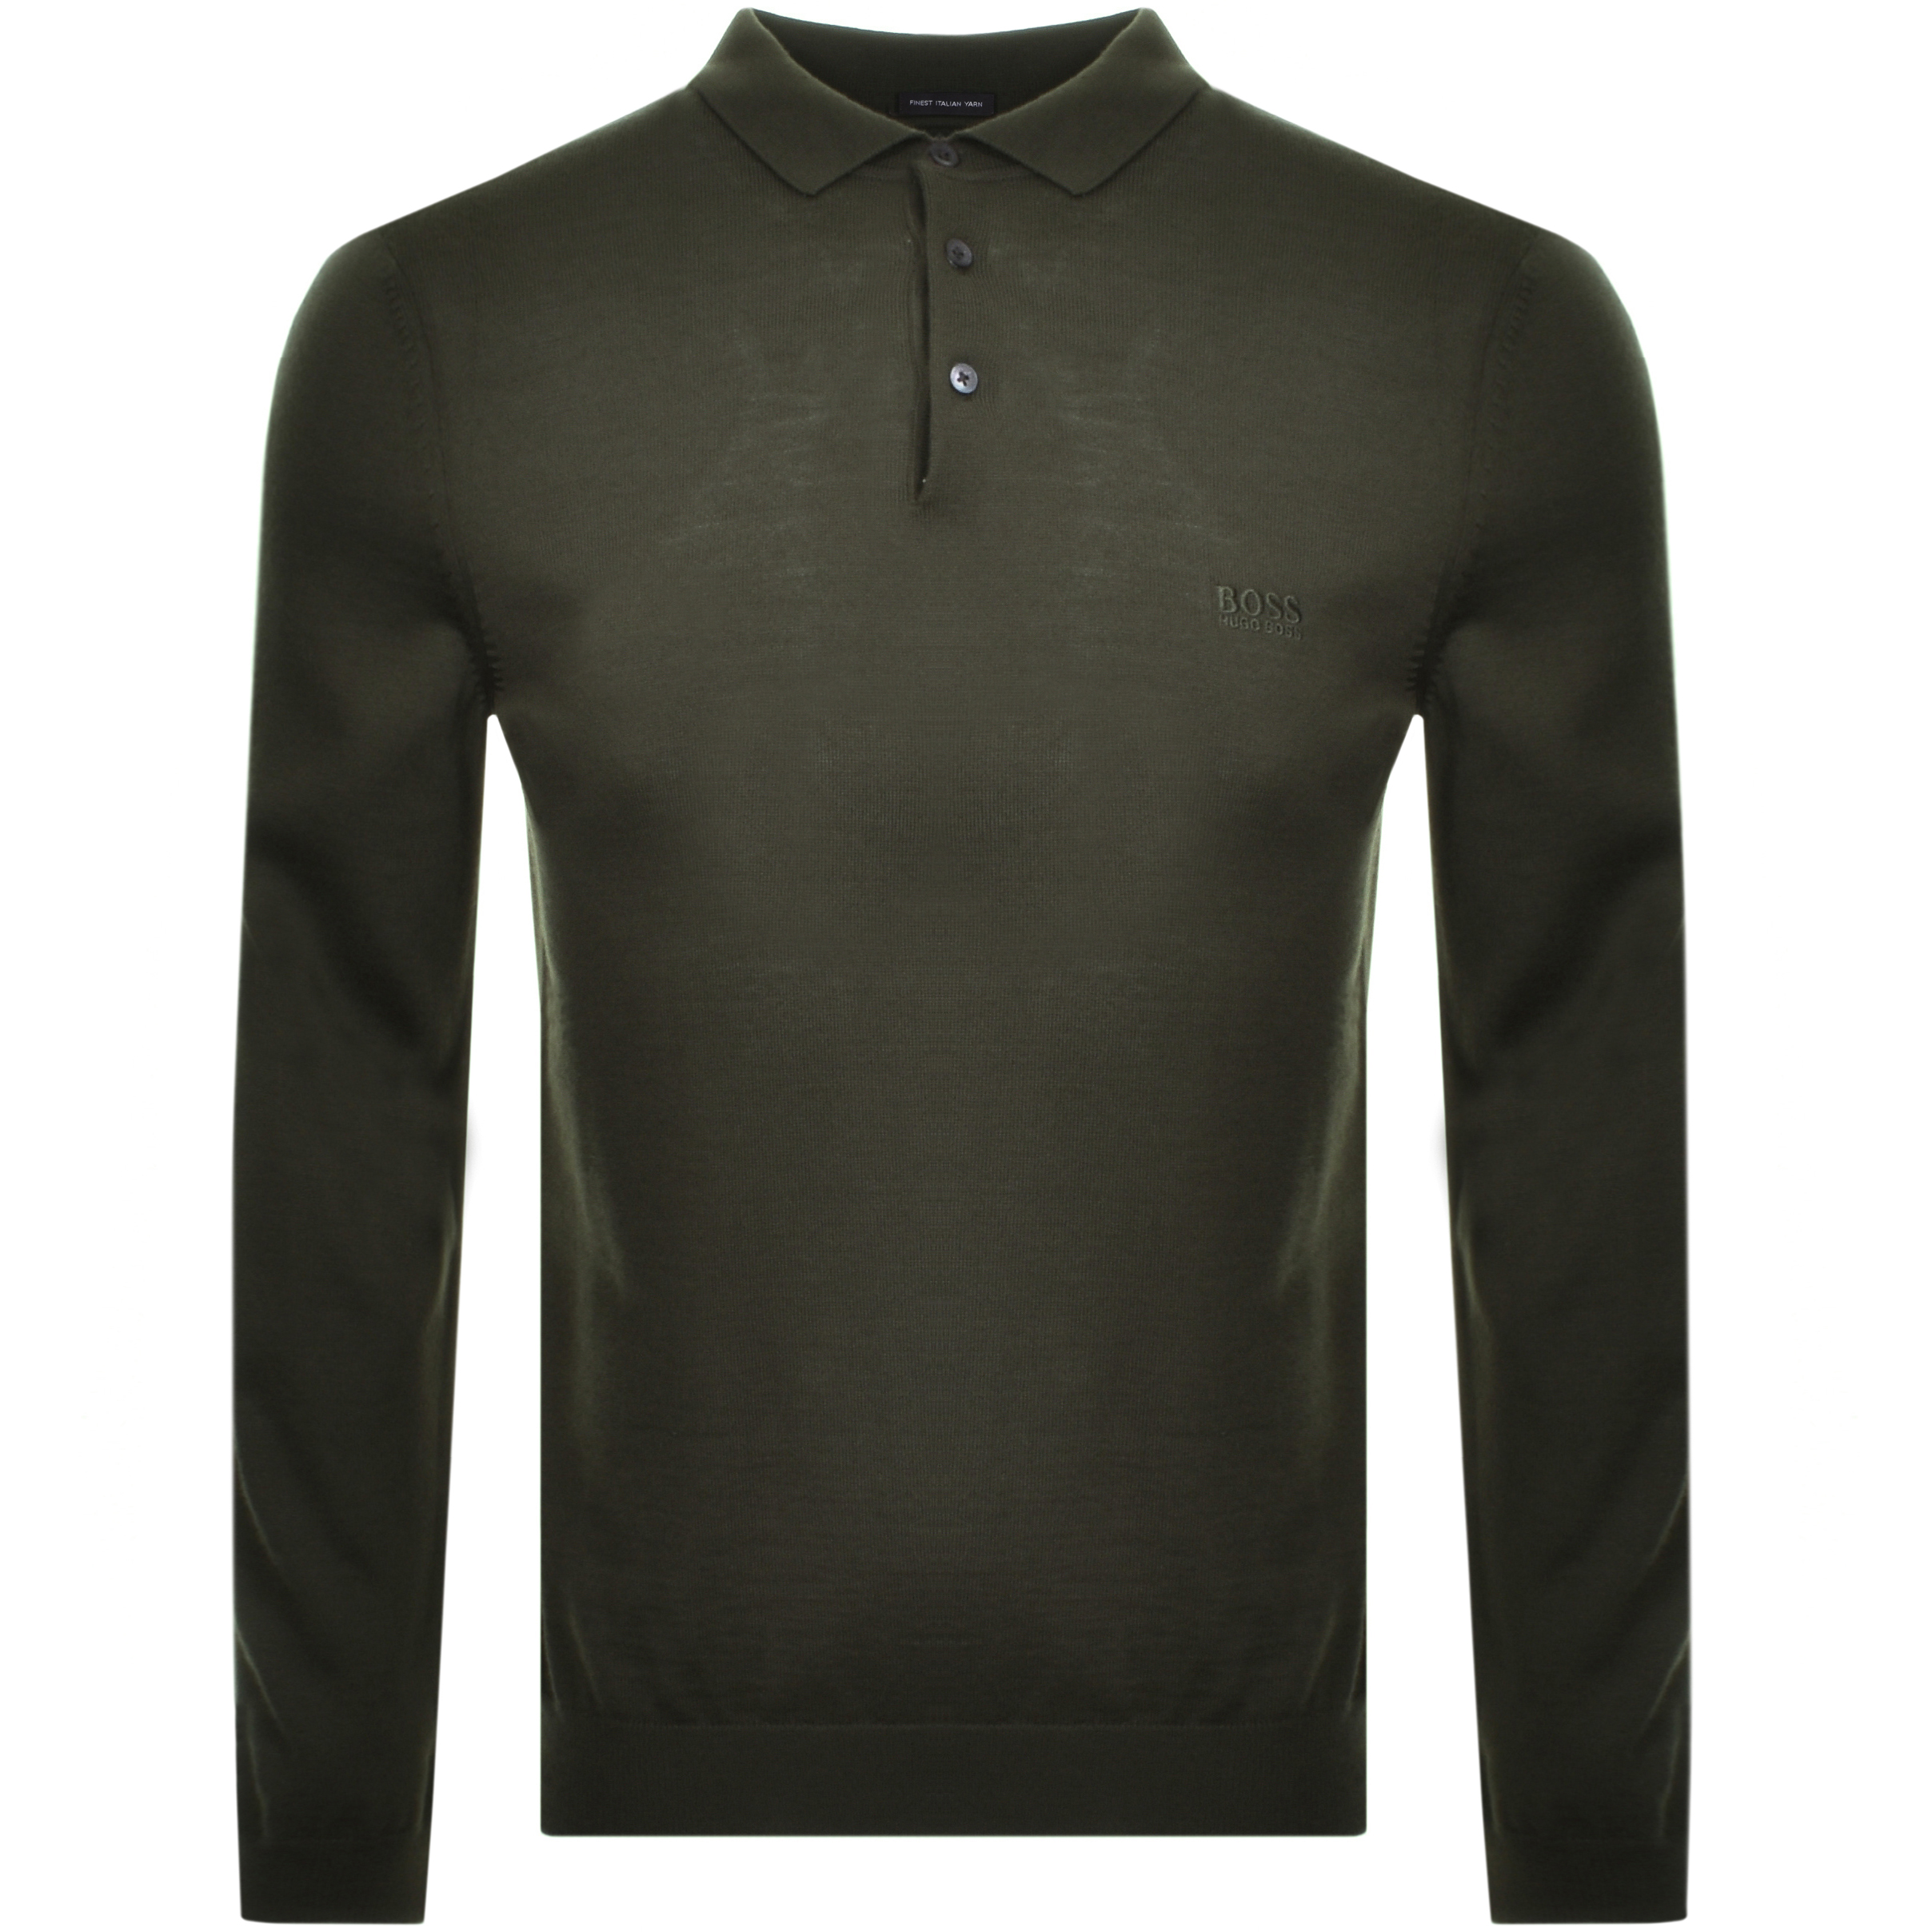 BOSS HUGO BOSS Bono Polo Knit Jumper Green